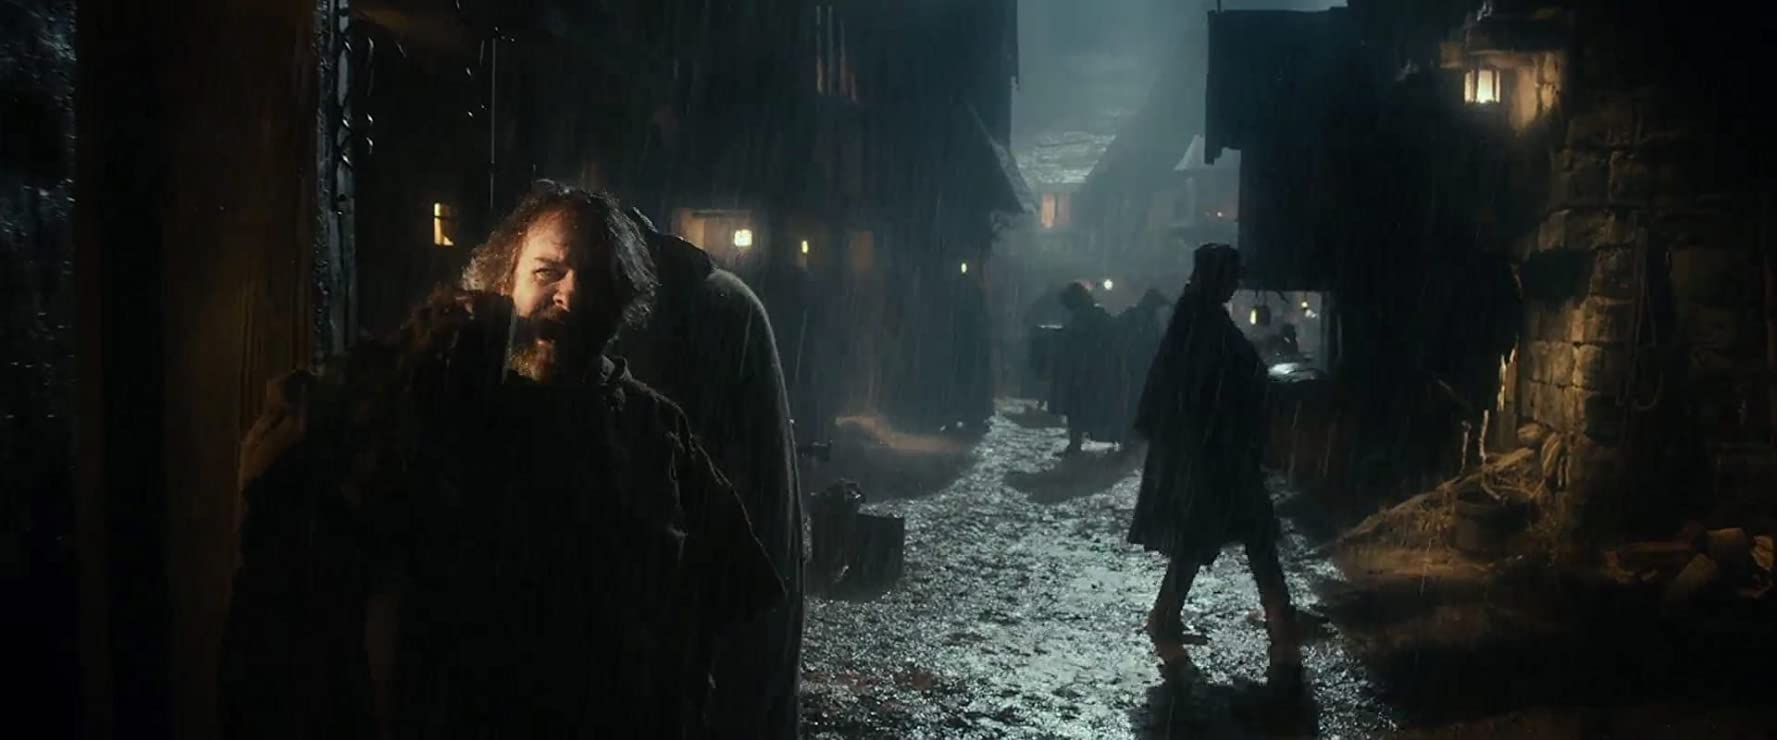 The Hobbit The Desolation Of Smaug 2013